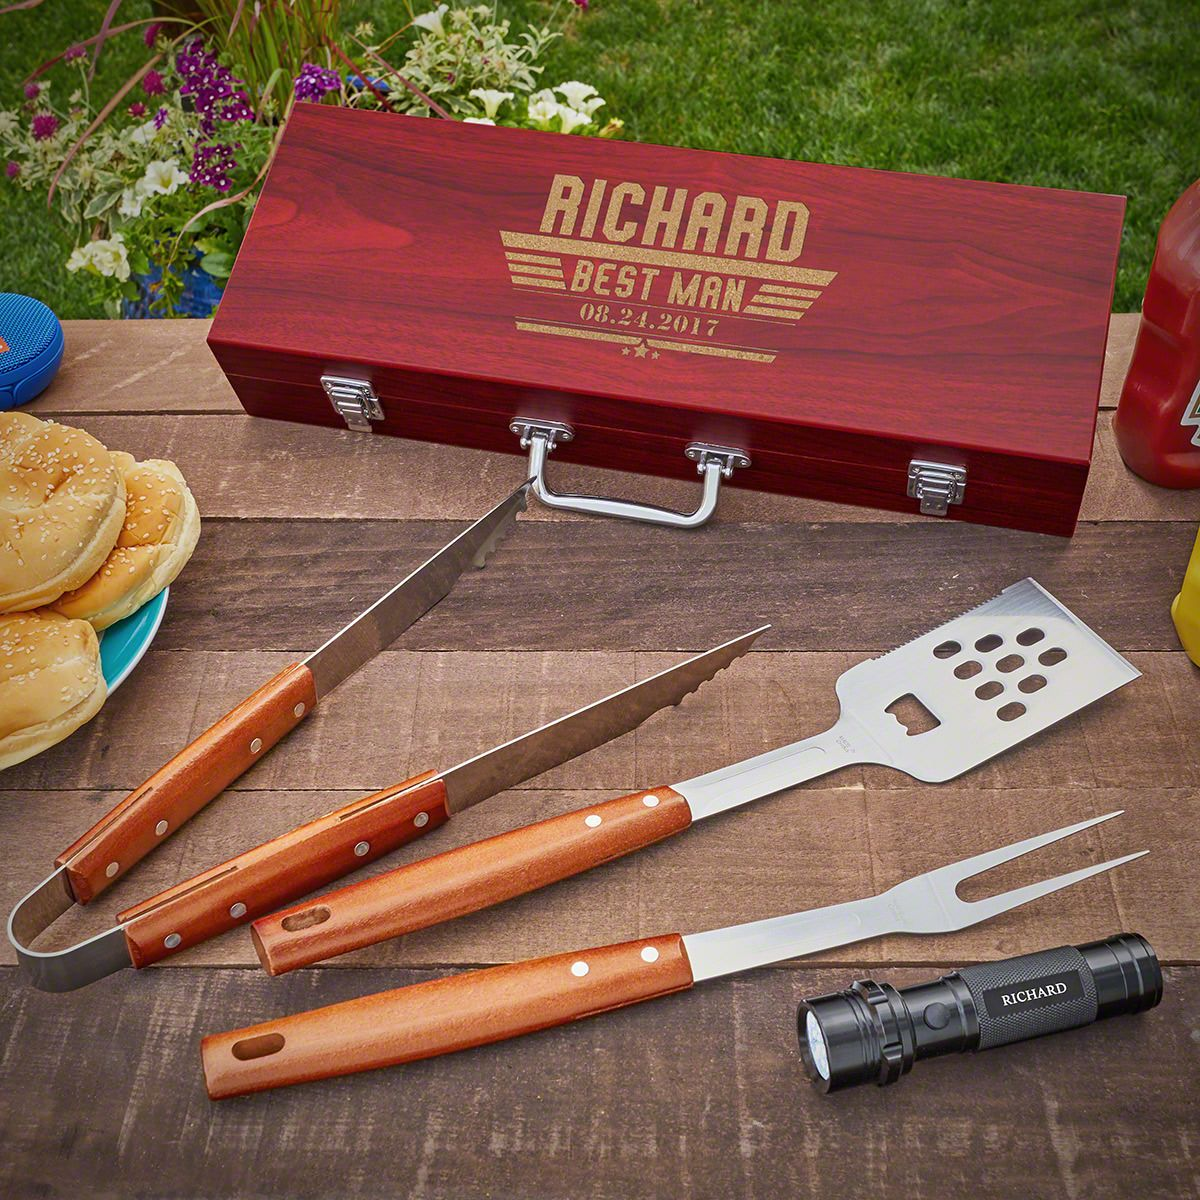 Maverick Personalized Grilling Tools Set of Groomsmen Gifts With Flashlight